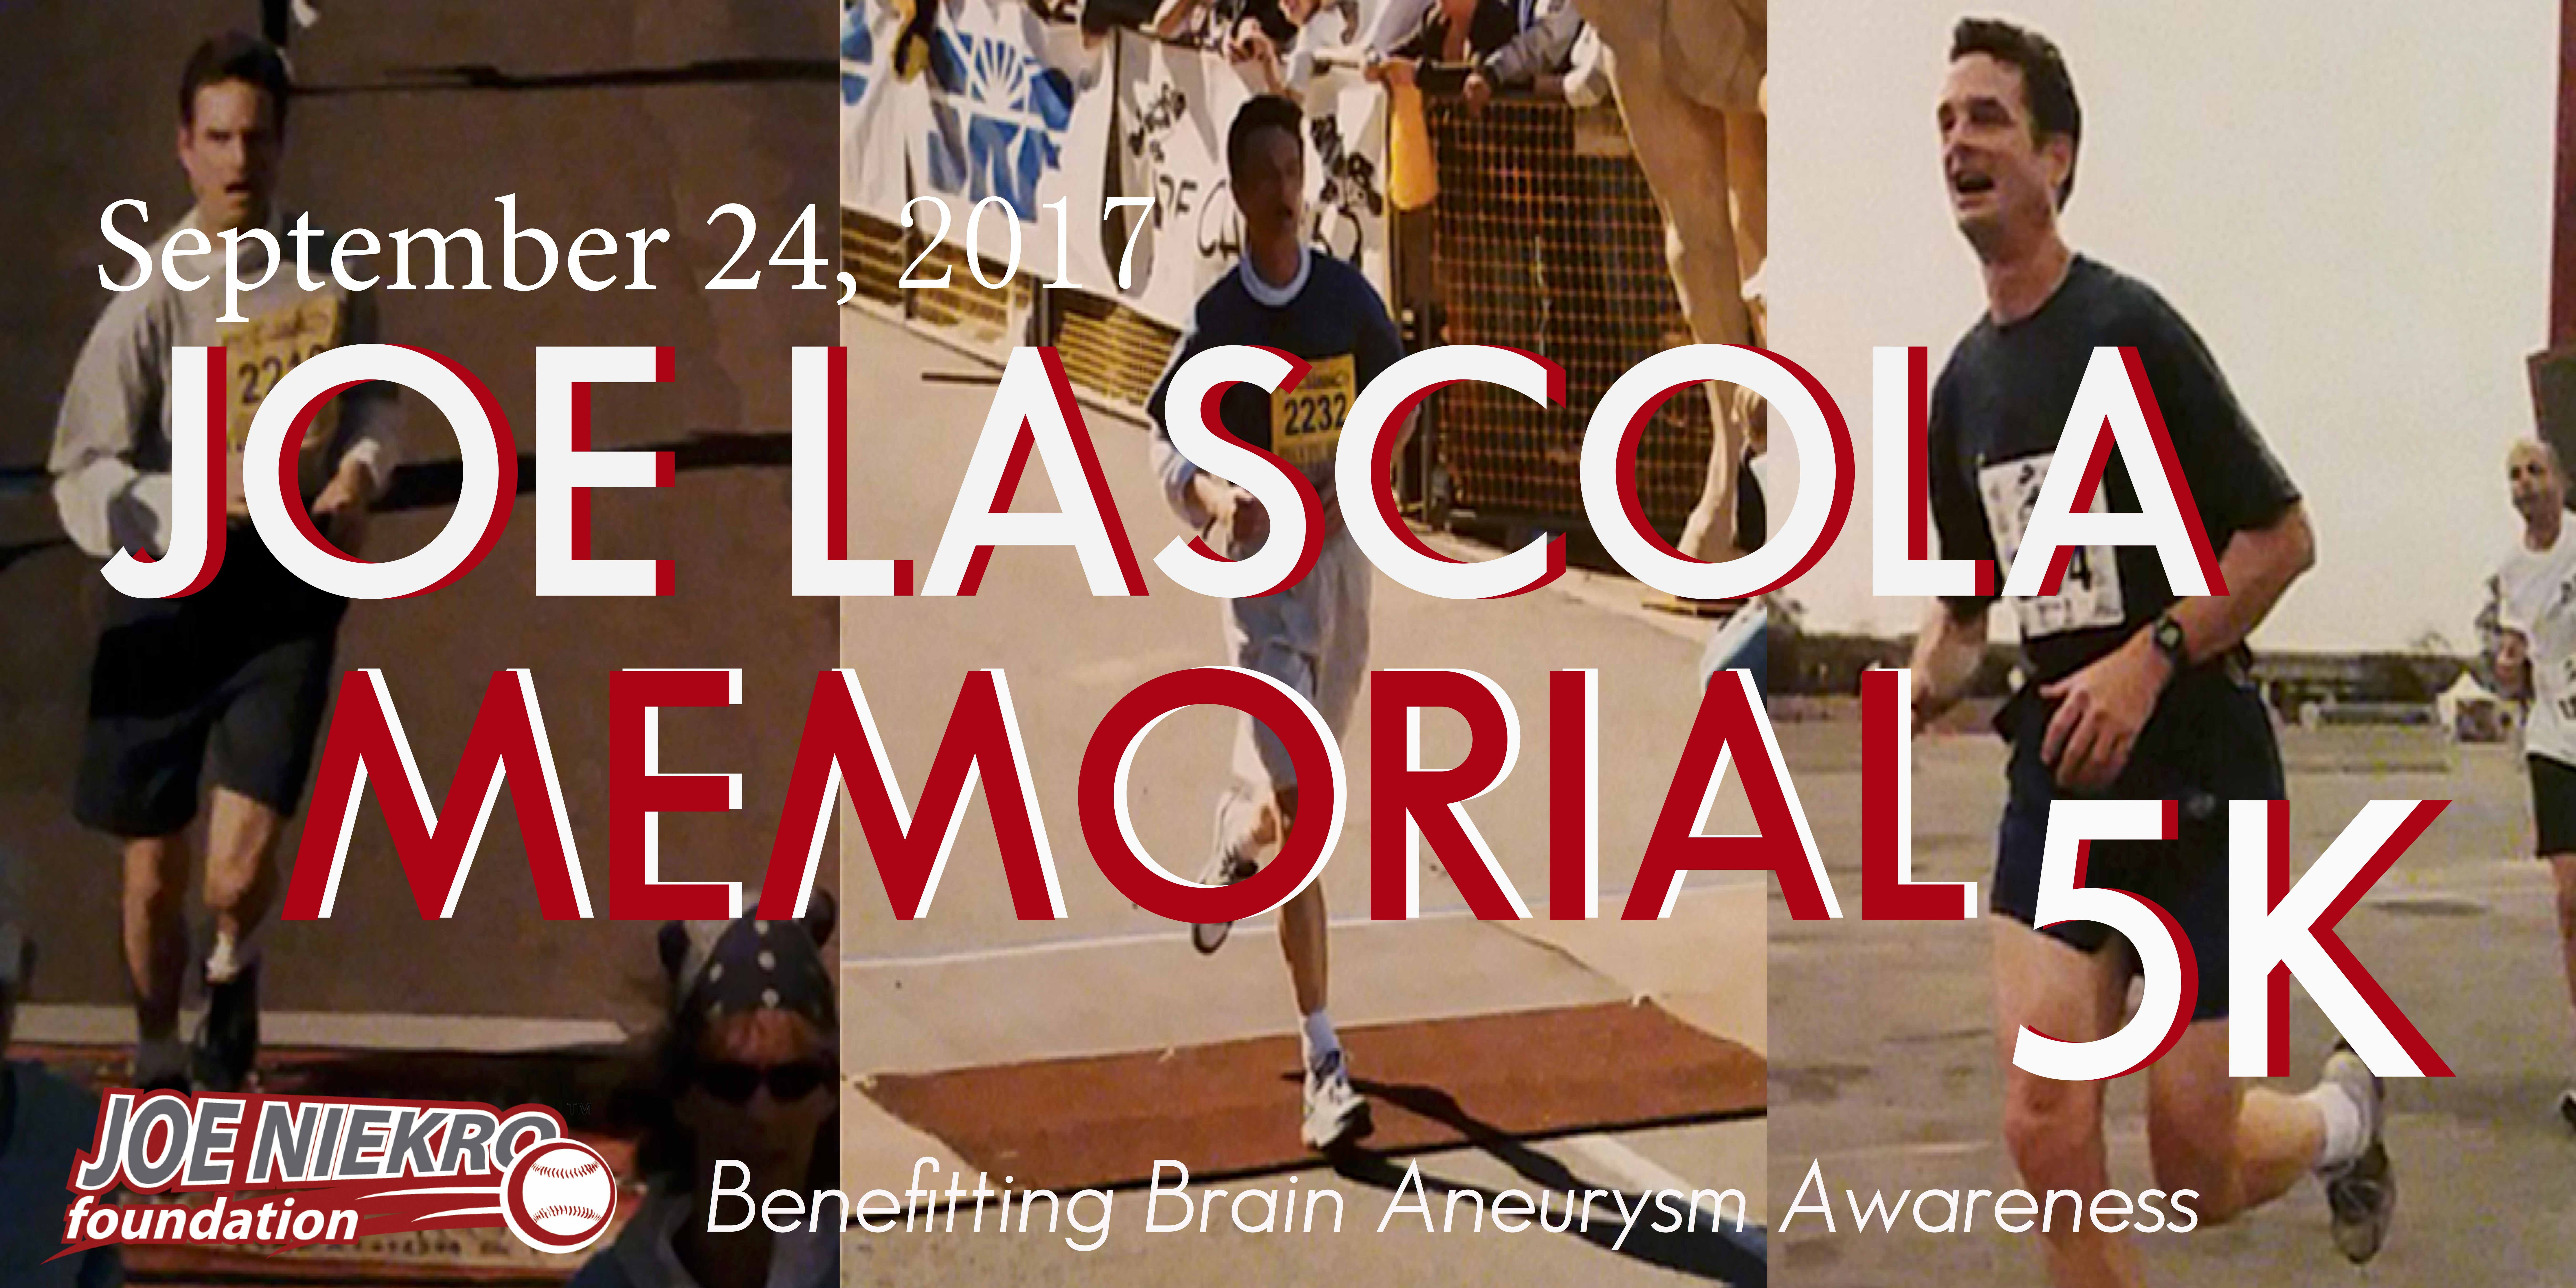 https://www.joeniekrofoundation.com/past-events/pastevents2017/joe-lascola-memorial-walk/attachment/lascola-2017-walk-banner-3/